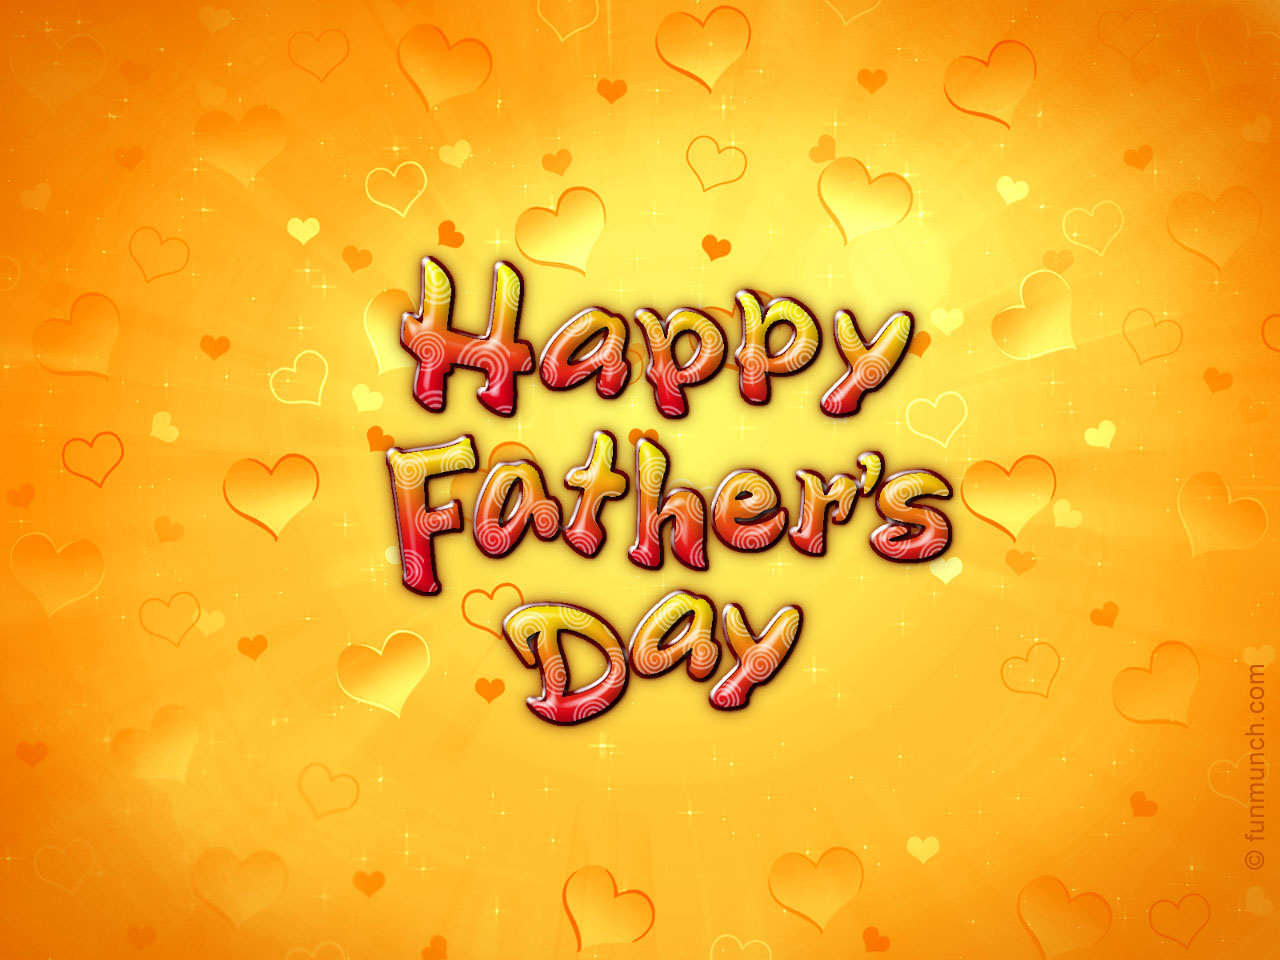 Happy Fathers' Day 2013